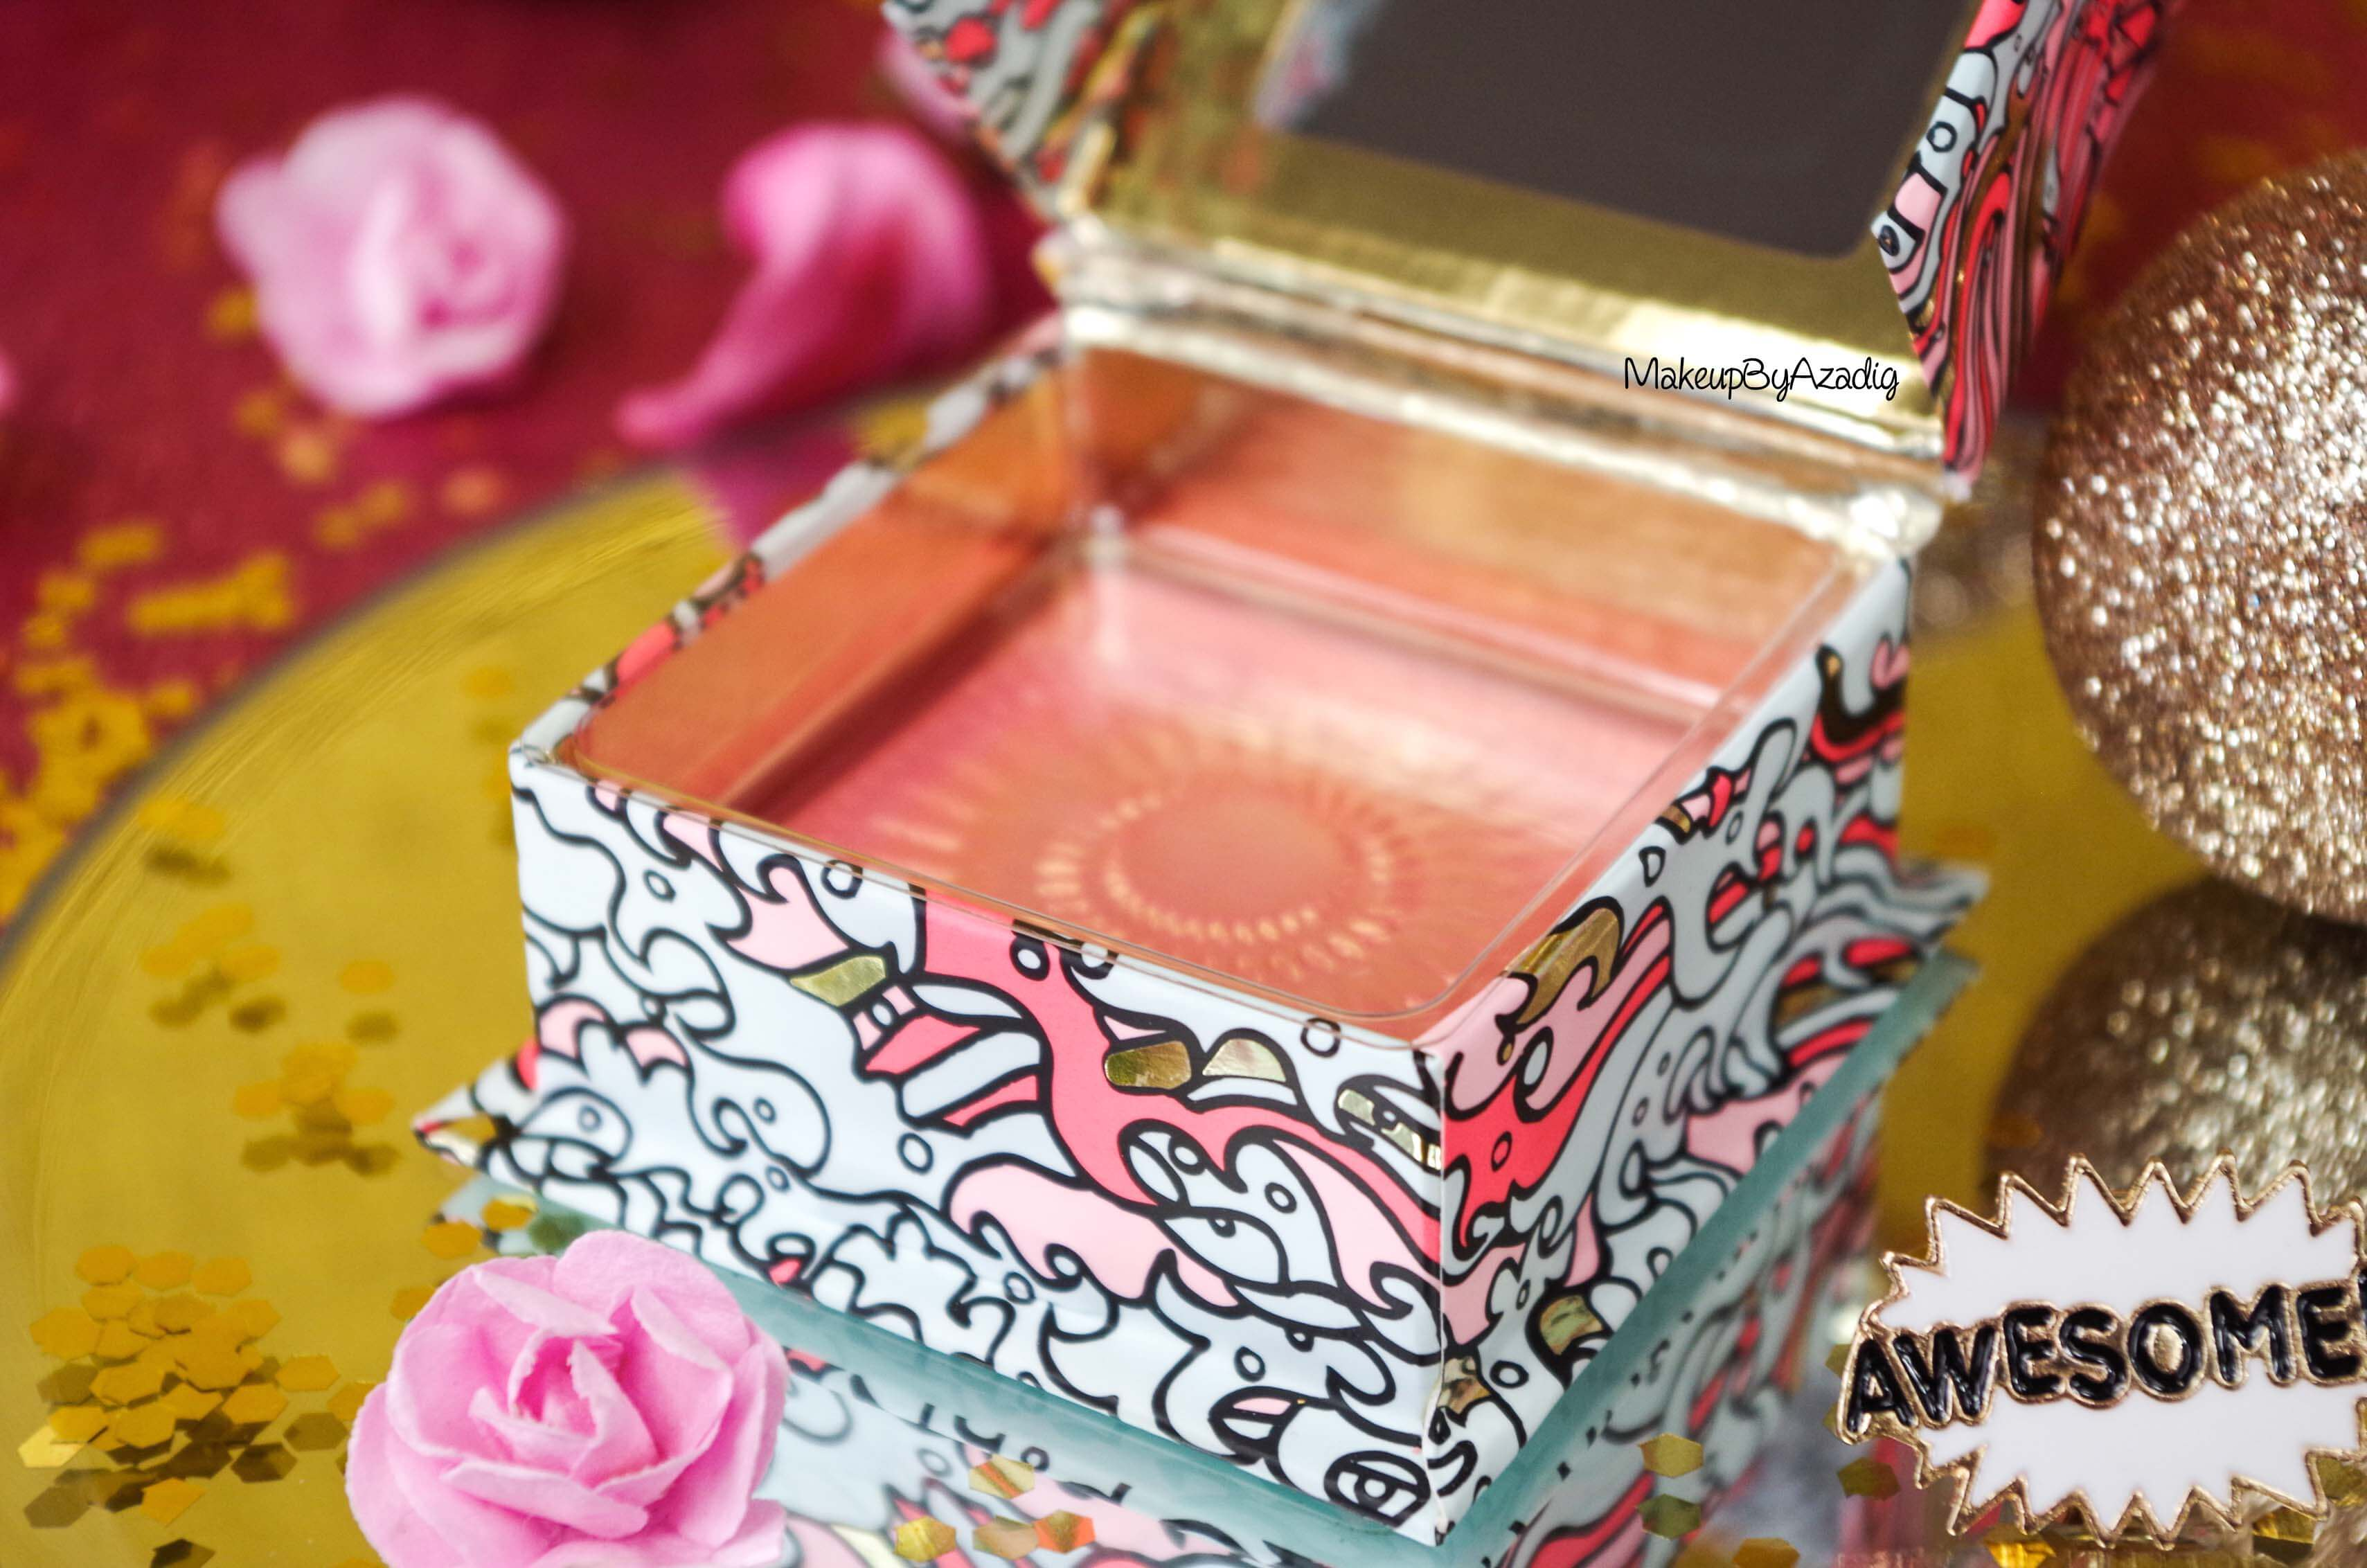 packaging-revue-review-blush-benefit-galifornia-san-francisco-sunny-golden-pink-blush-avis-prix-sephora-makeupbyazadig-coachella